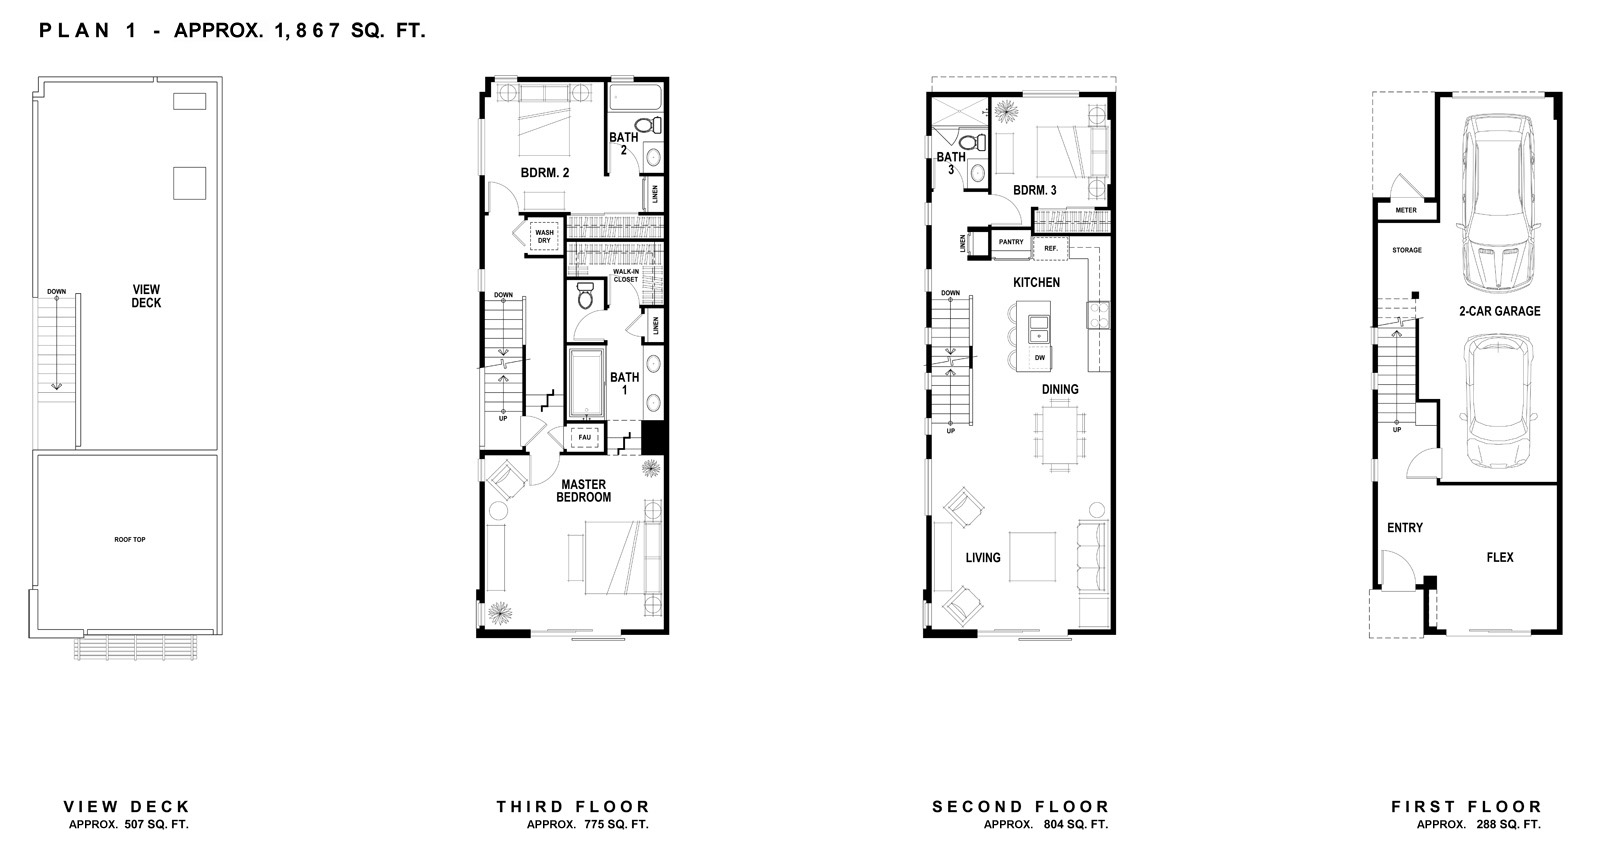 ciel_floor_plan_1 approx.jpg